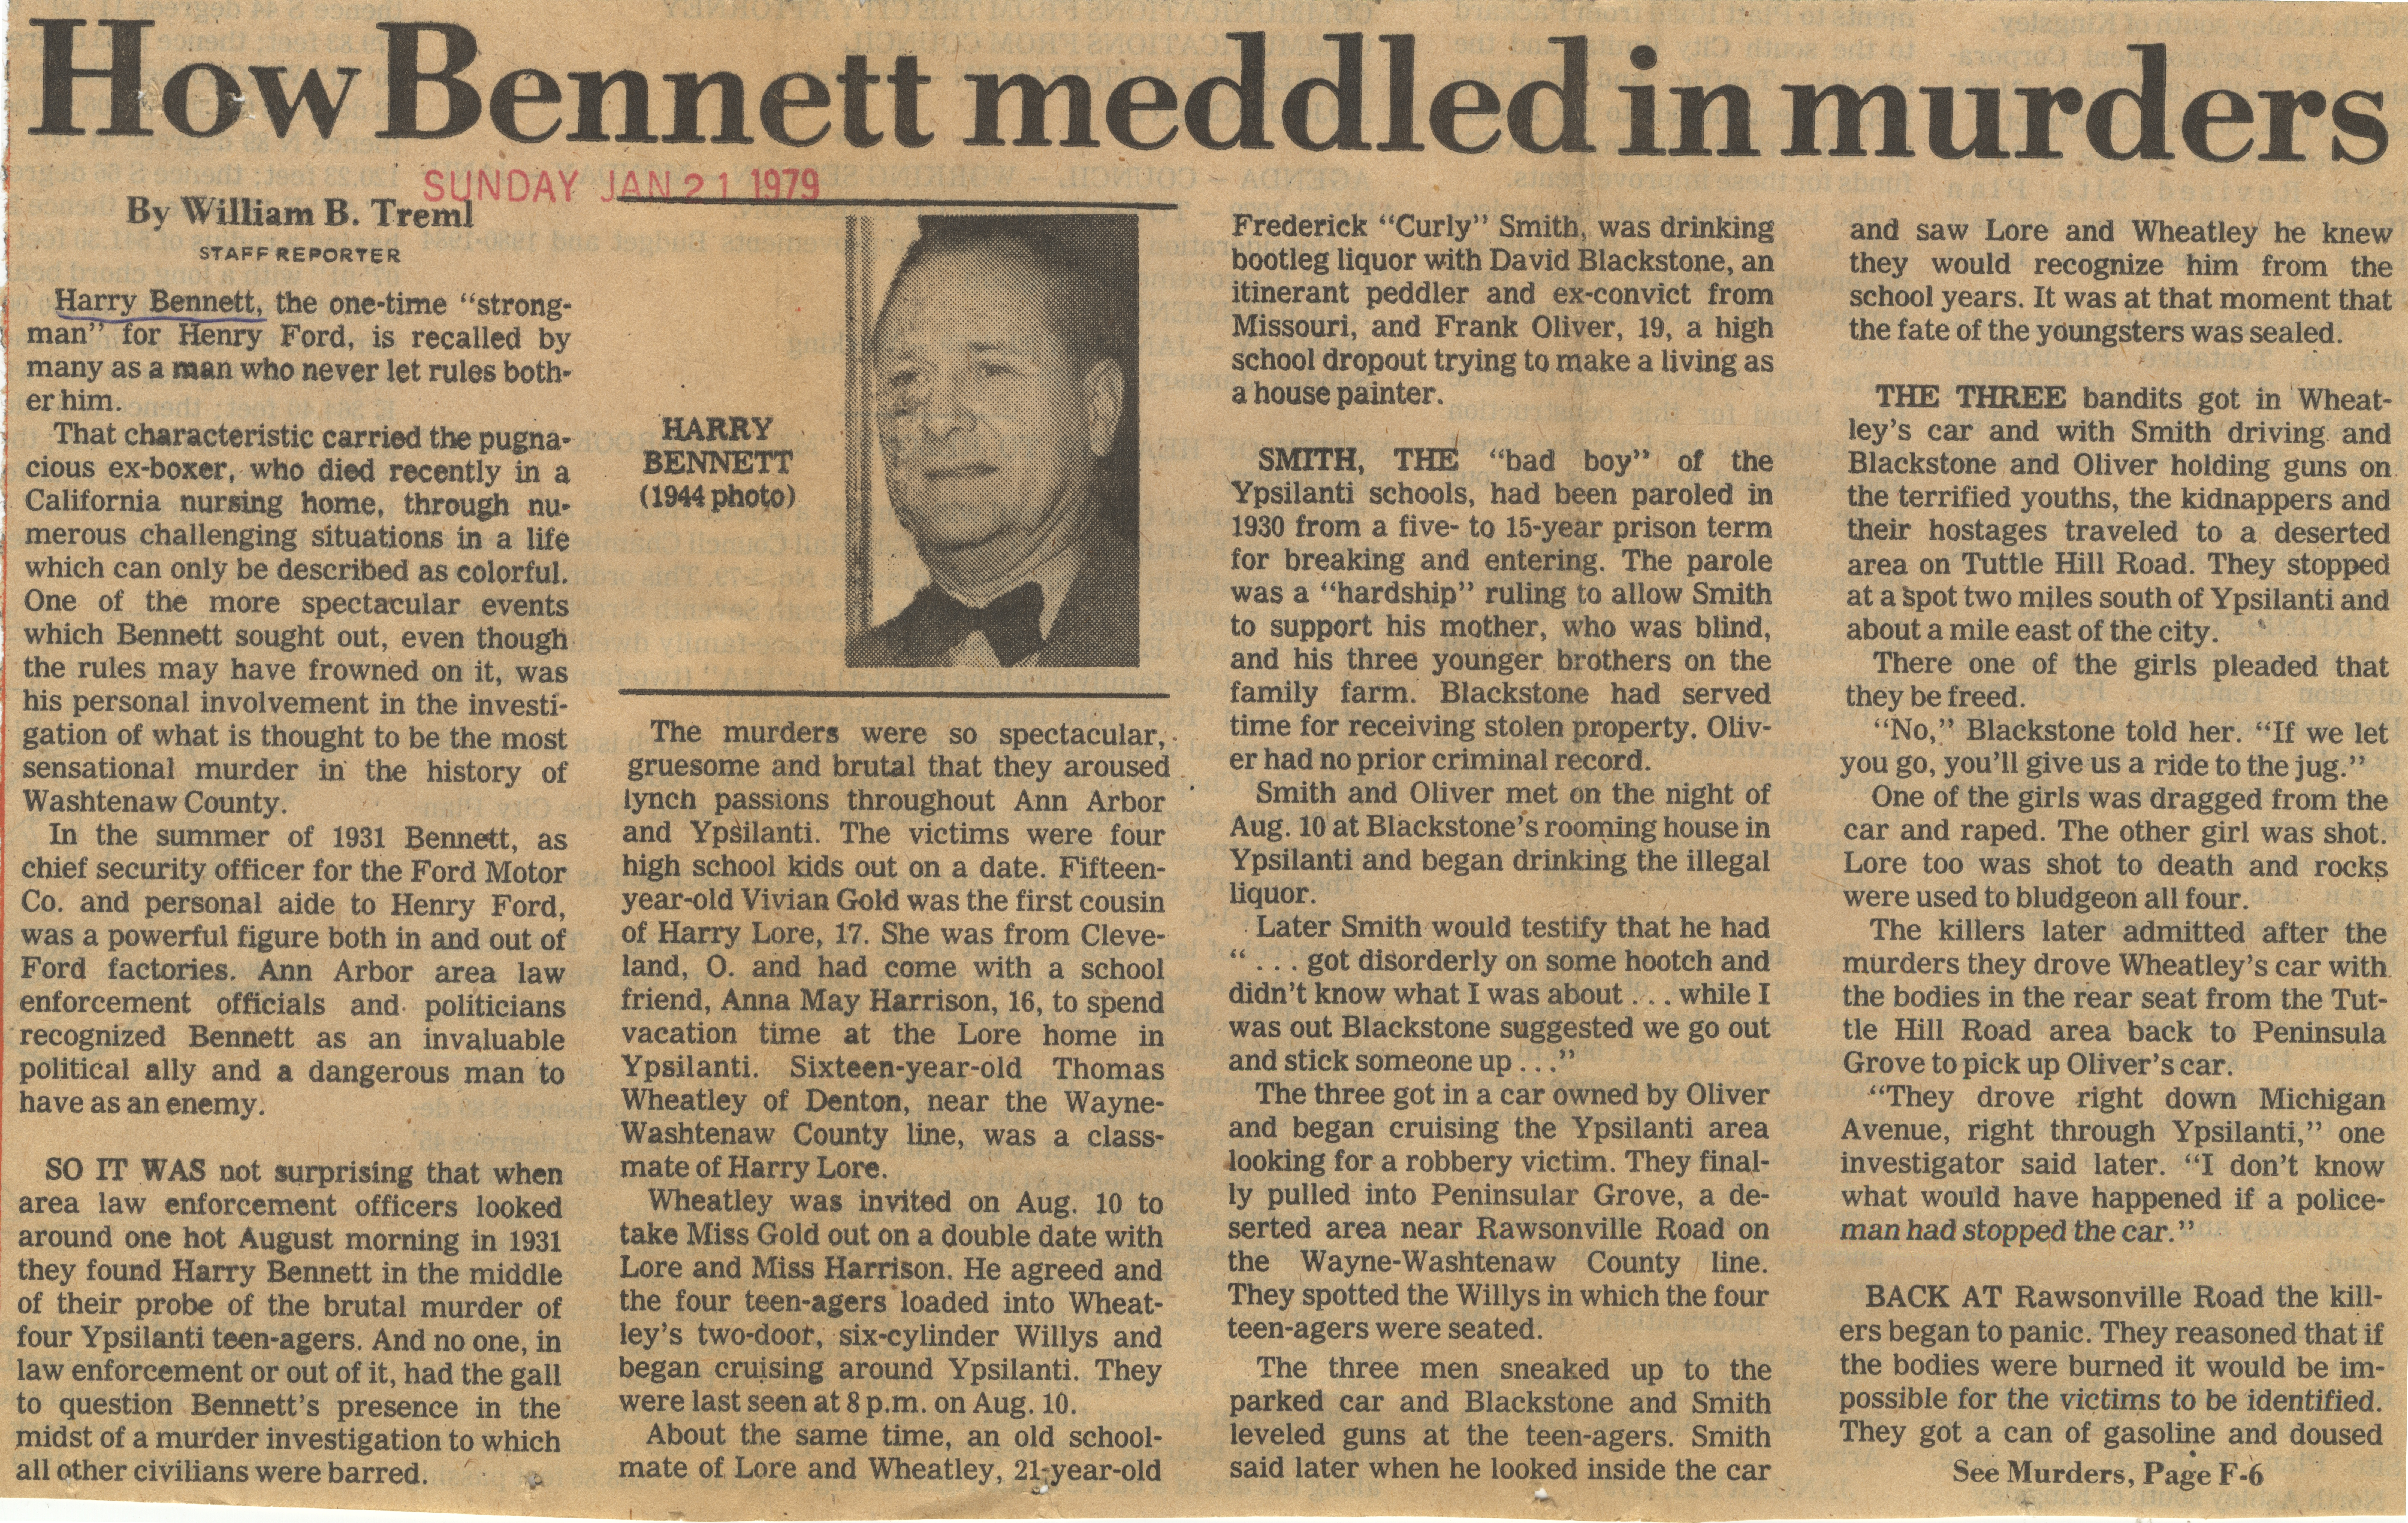 How Bennett Meddled in Murders image